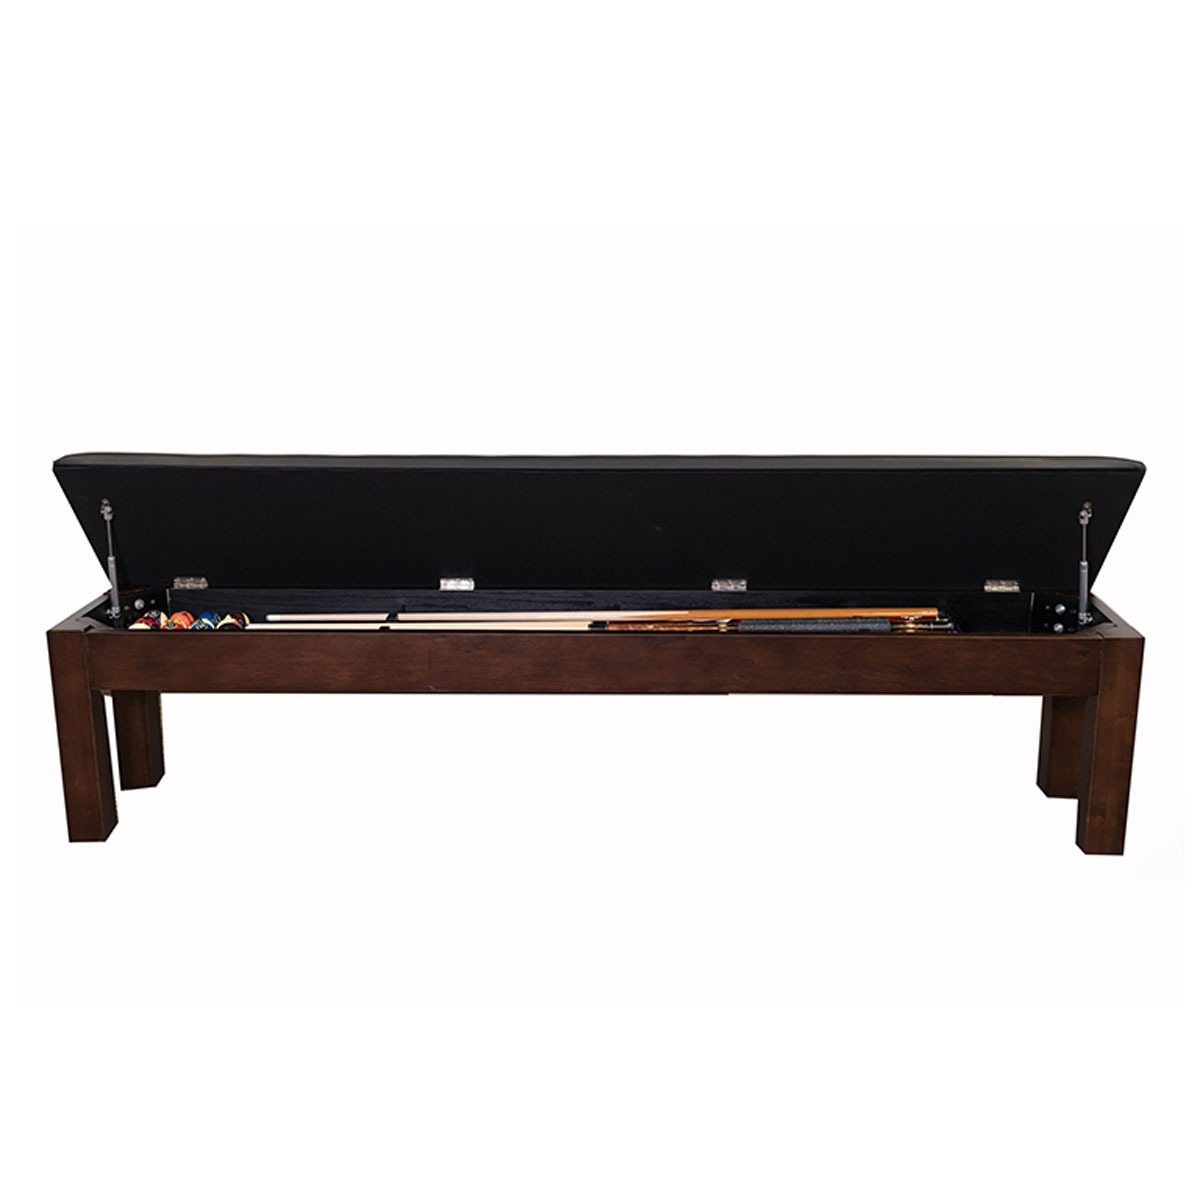 Hamilton Bench Openq - Princeton Pool Table